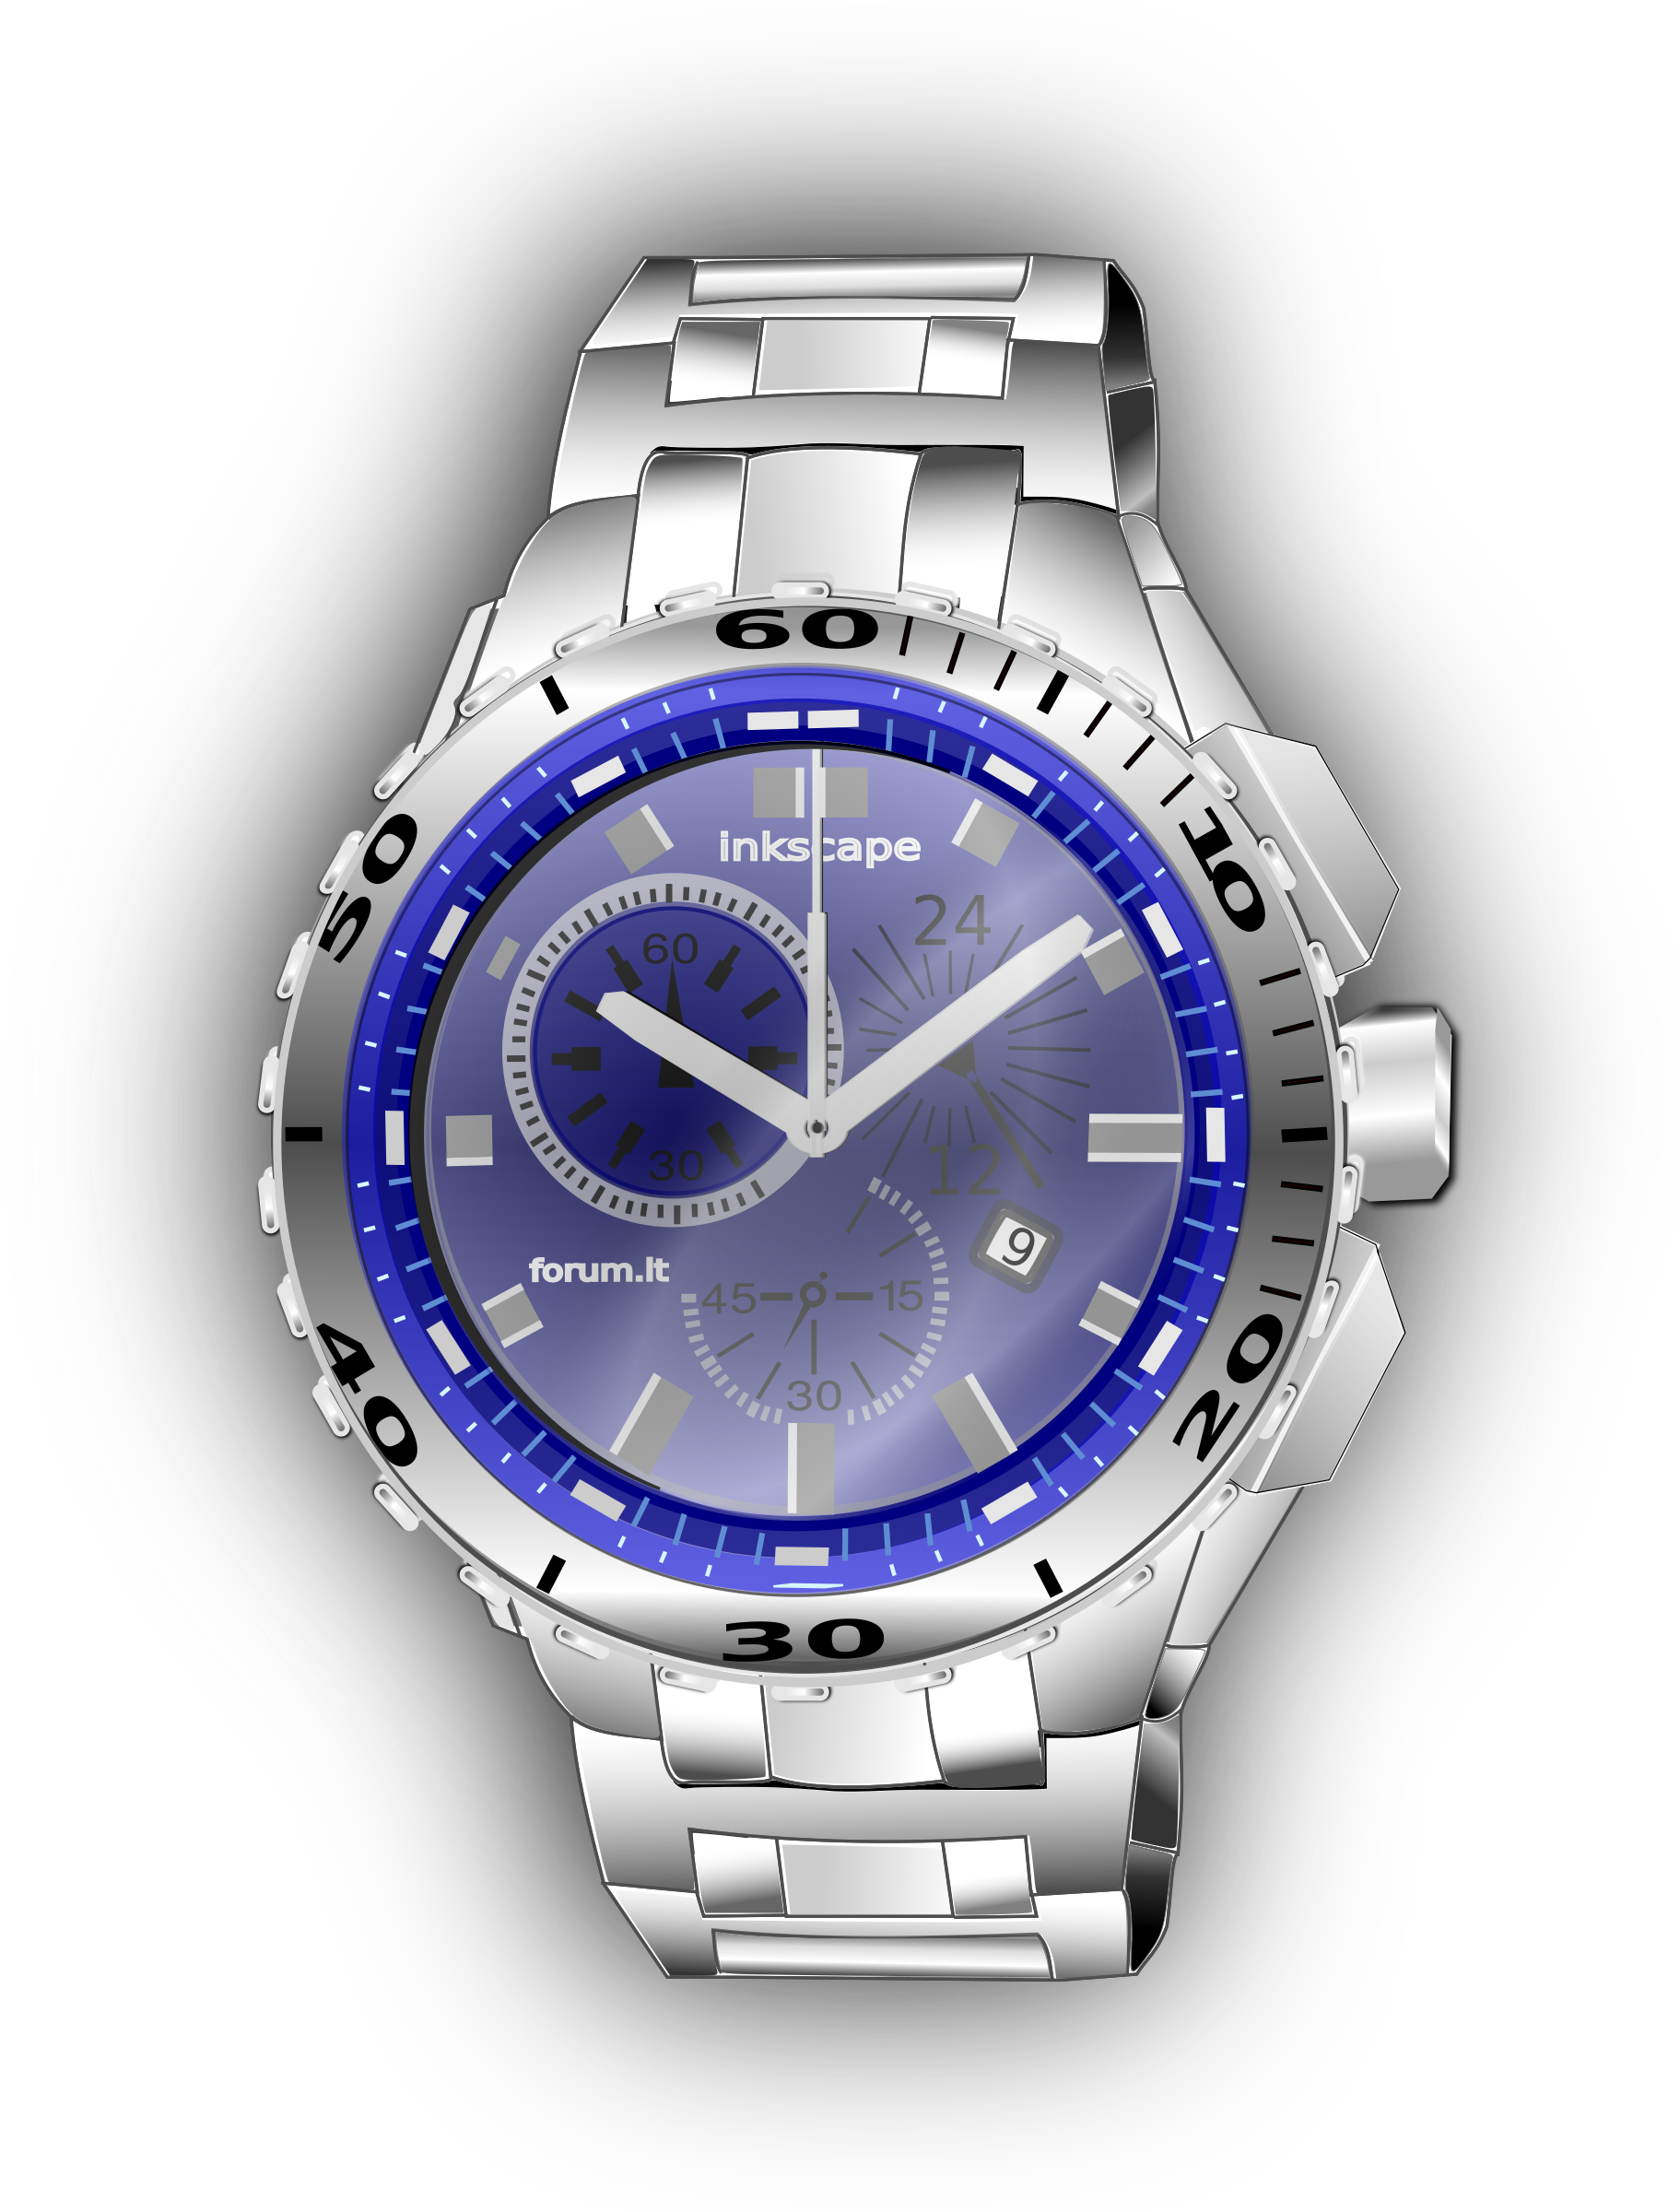 Orologio by inkscapeforum.it